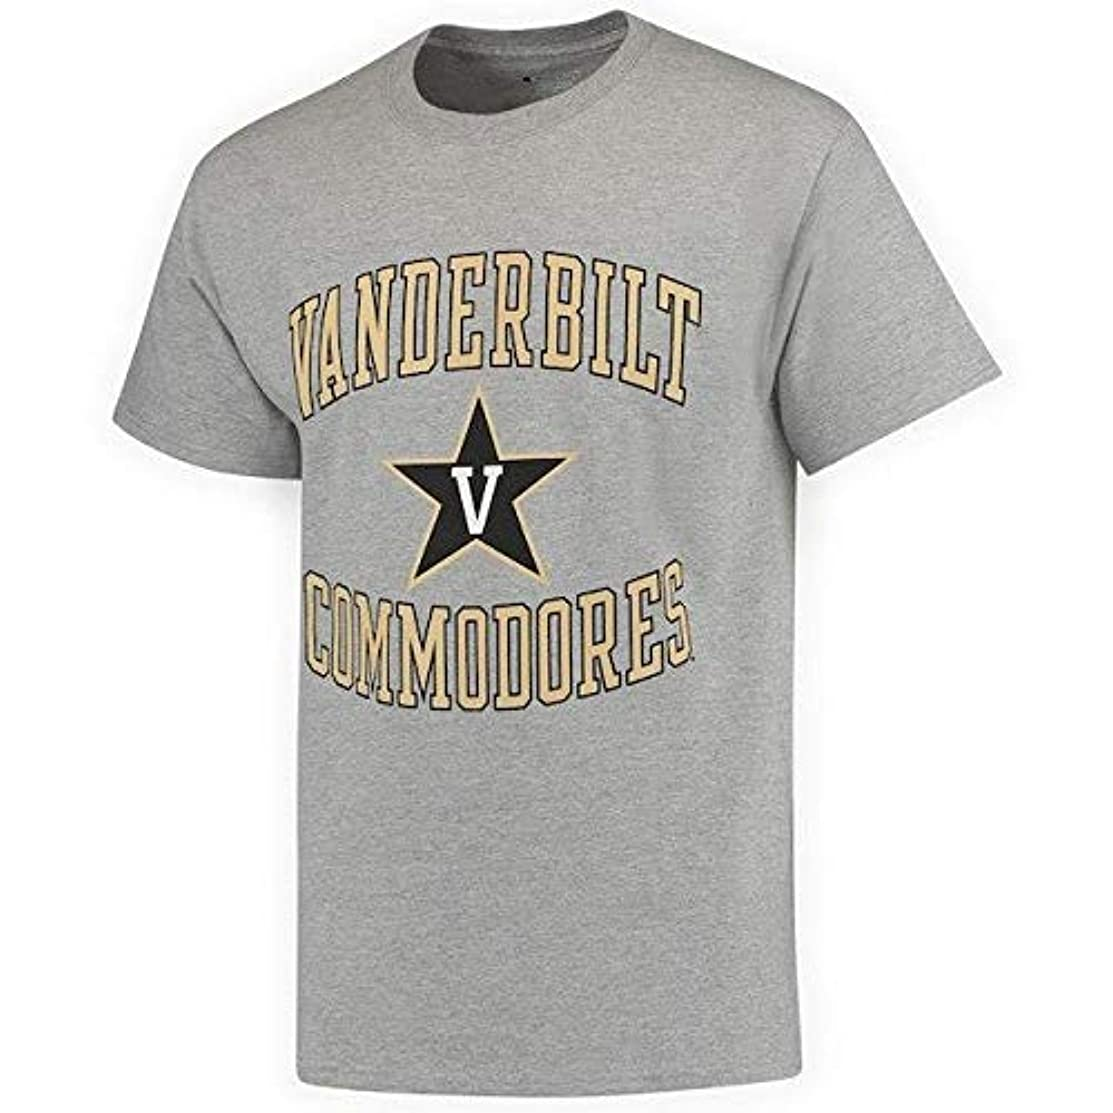 橋脚空中クリープChampion Champion Vanderbilt Commodores Gray Tradition T-Shirt スポーツ用品 【並行輸入品】